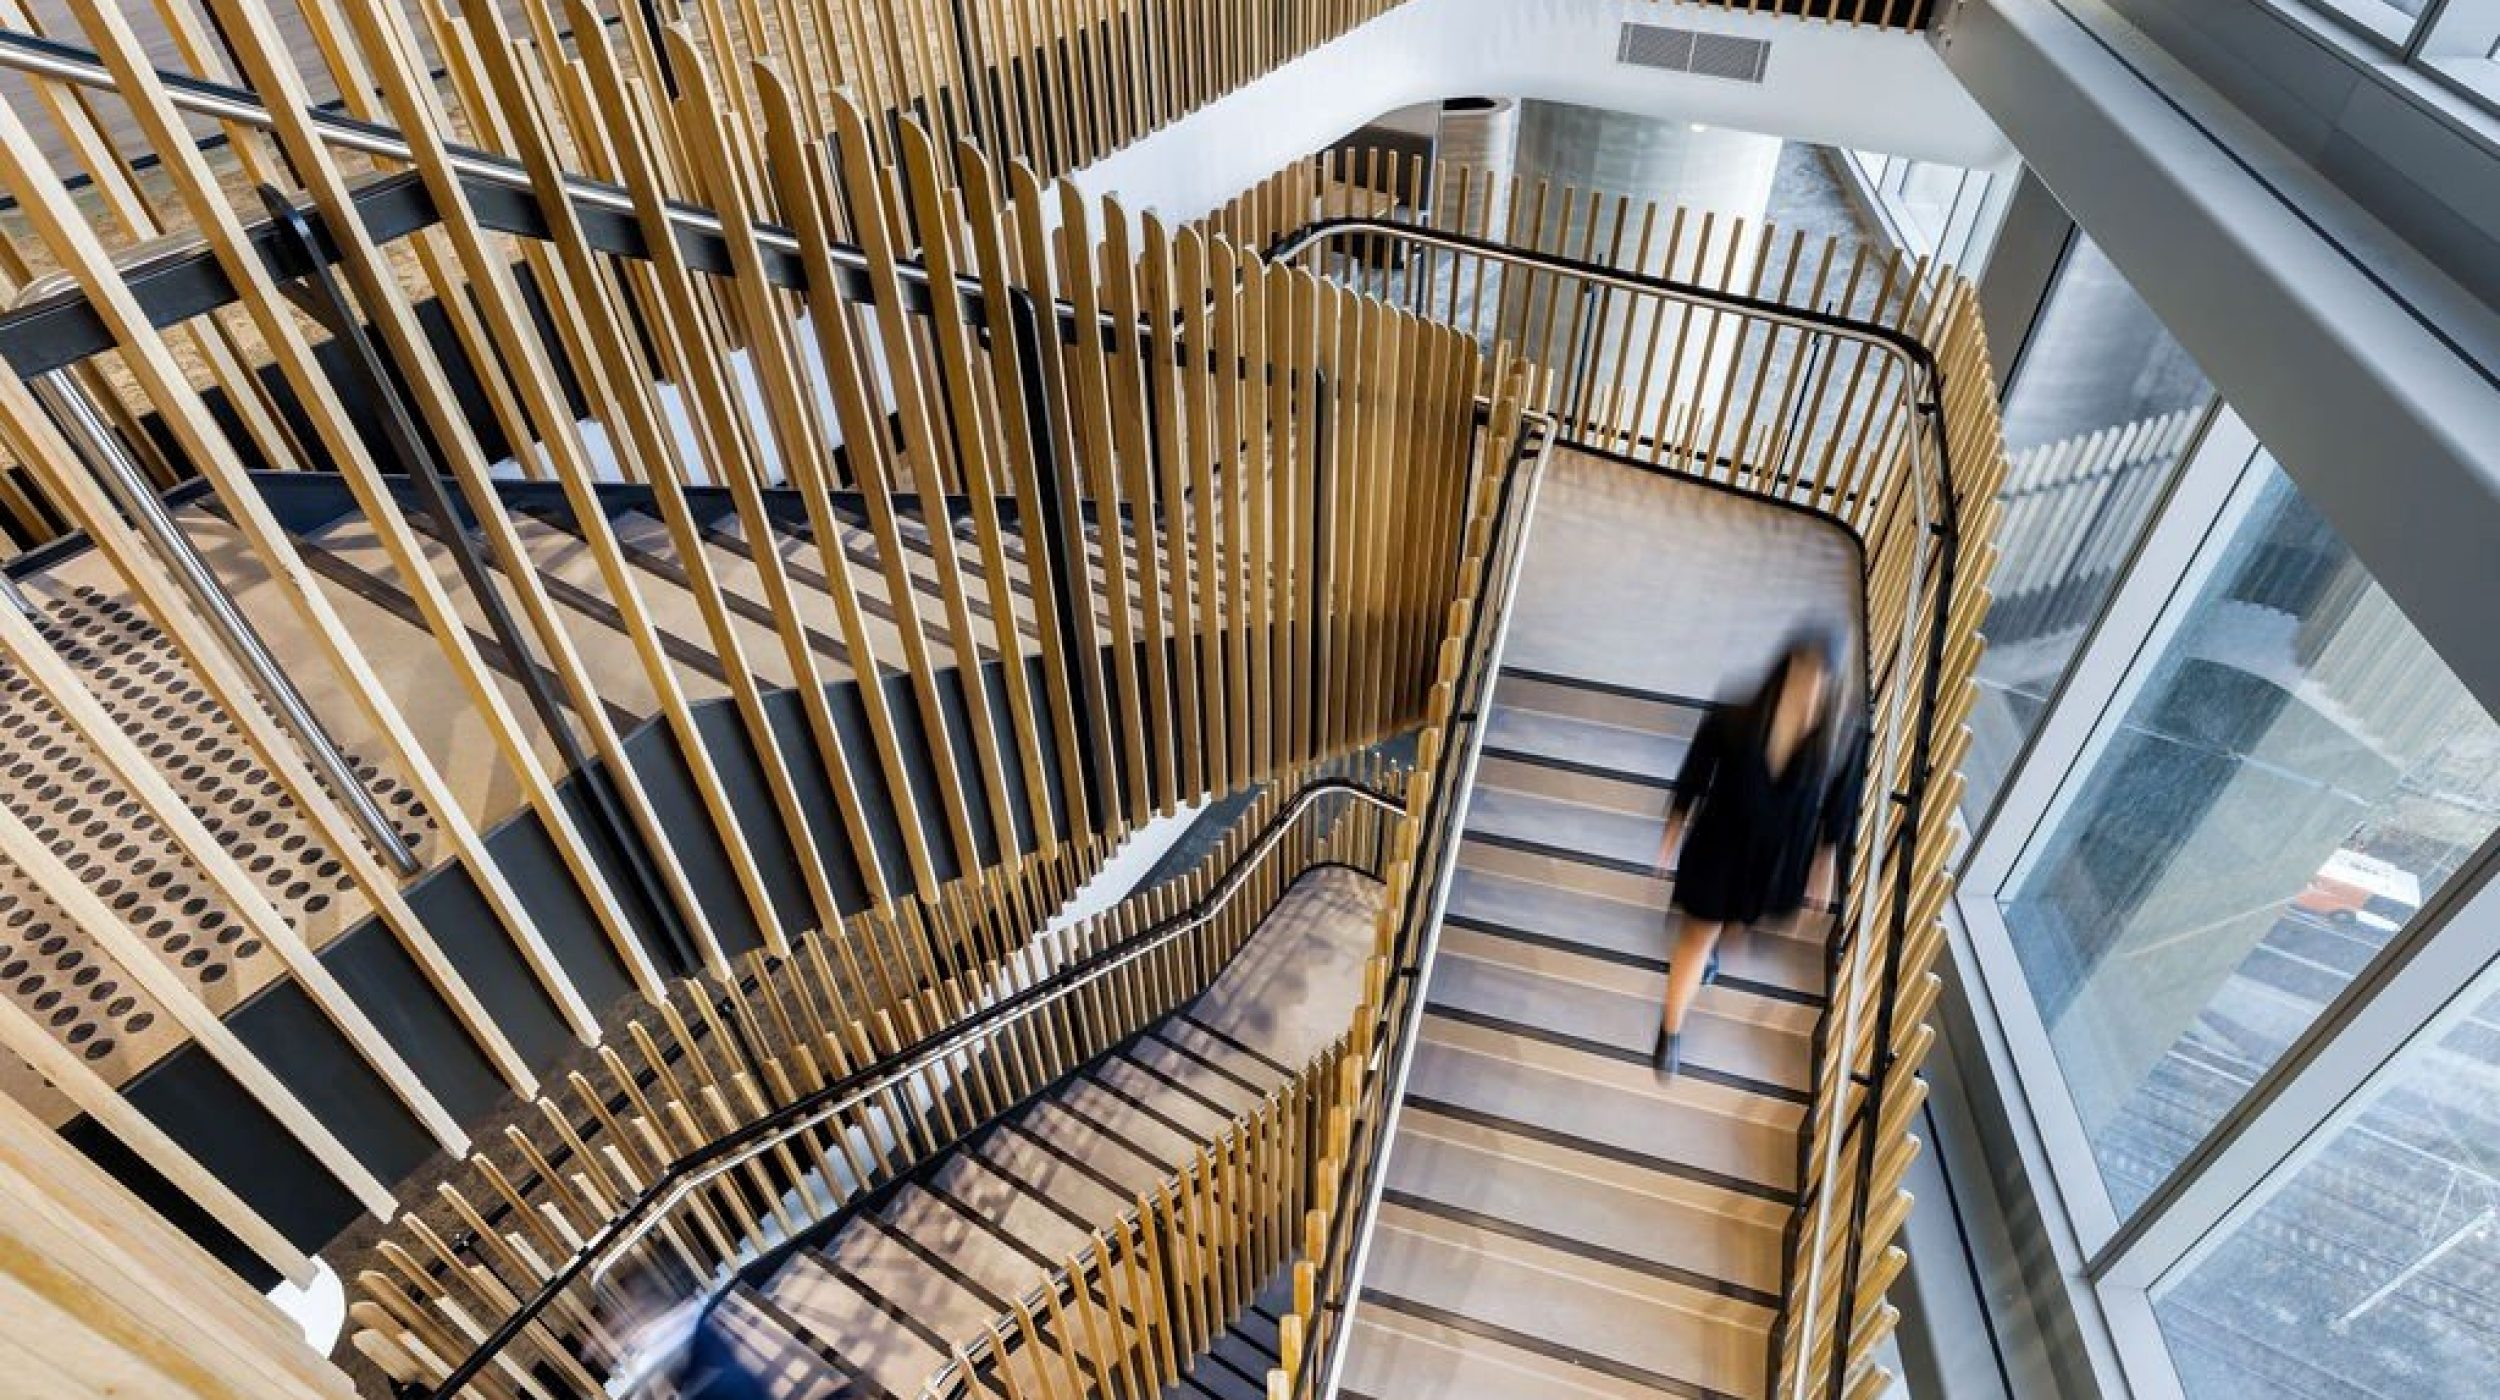 Architectural Stairs | Property NSW Parramatta | Active Metal 01